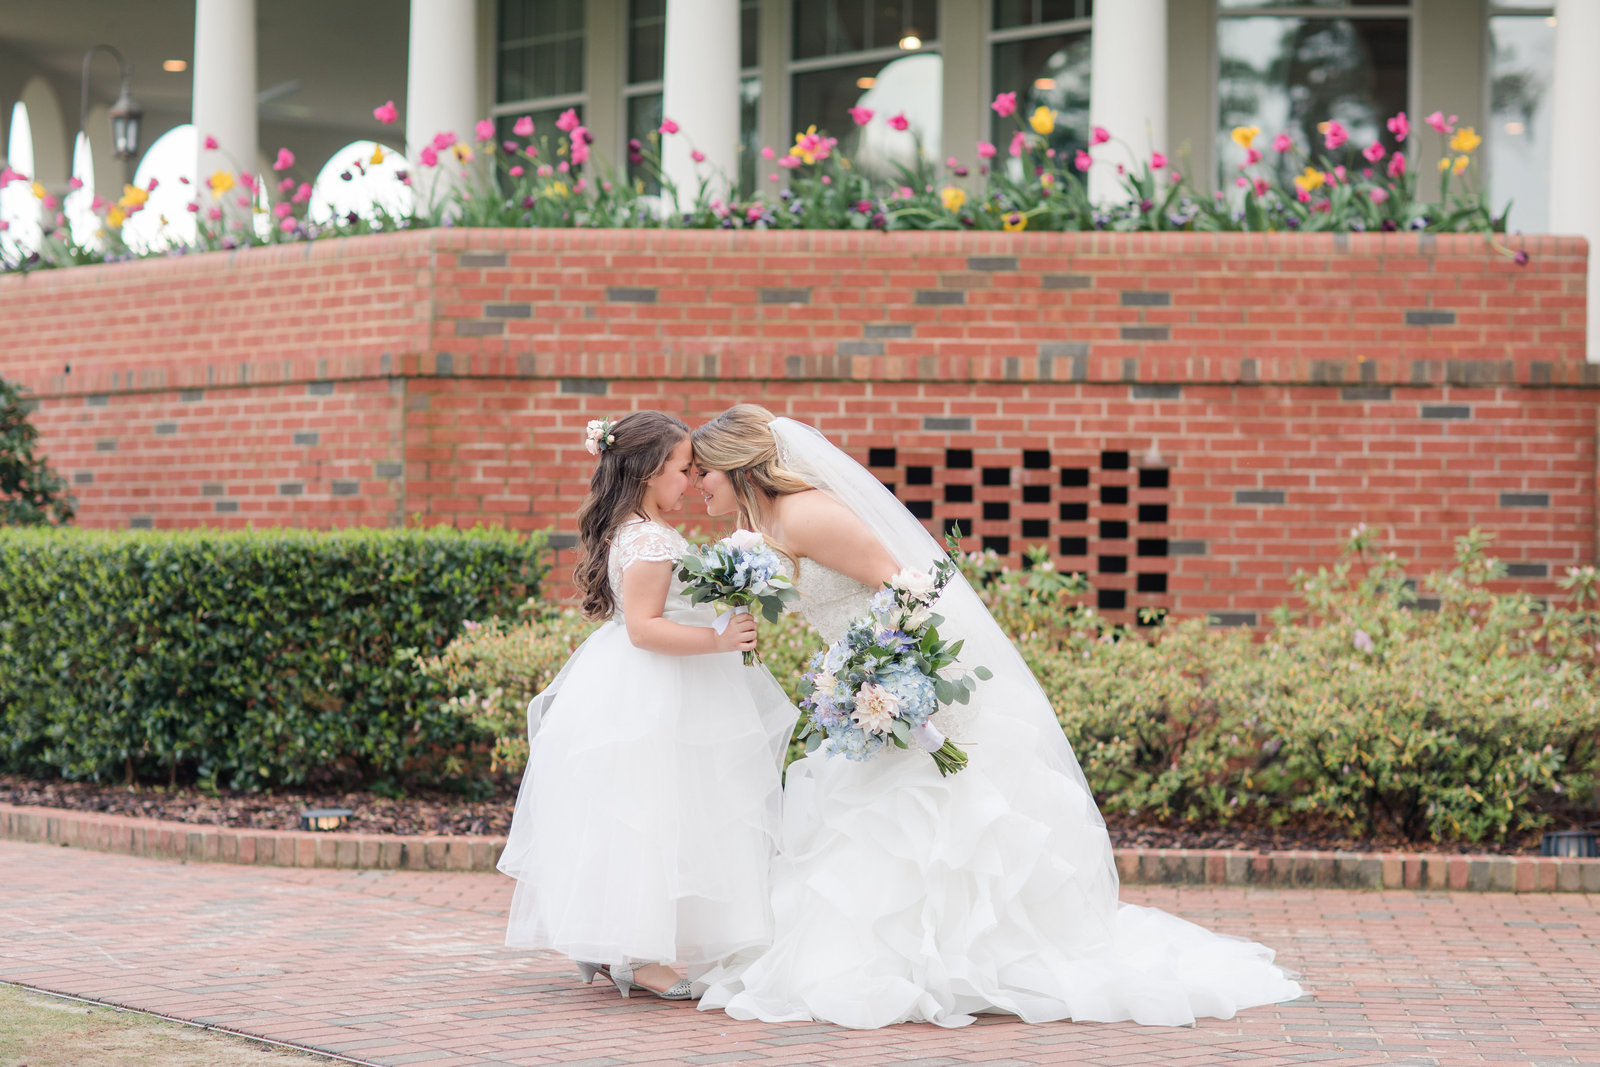 Jennifer_B_Photography-Pinehurst_Club-Pinehurst_NC-Wedding_Day-Caleb___Miranda-JB_Favs-2019-0096